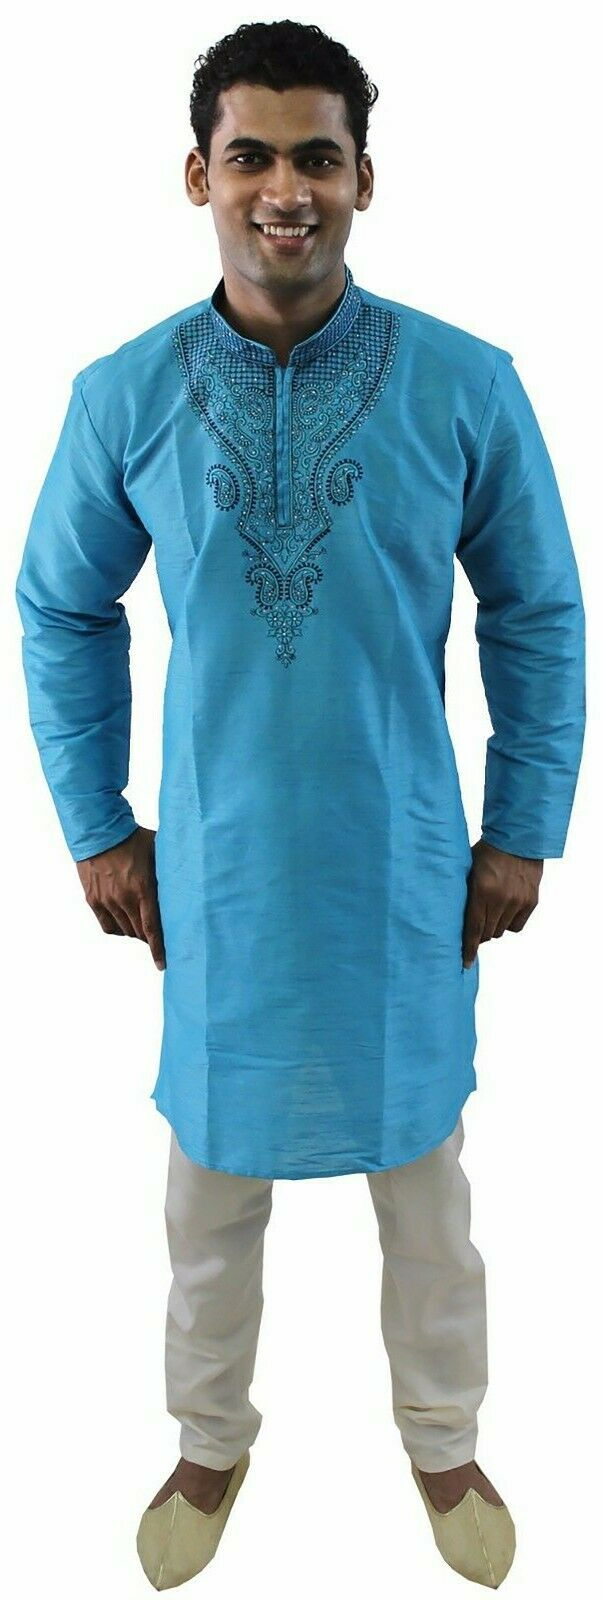 Blue Silk Designer Embroidered Indian Dress Wedding Kurta Sherwani Pajama Set